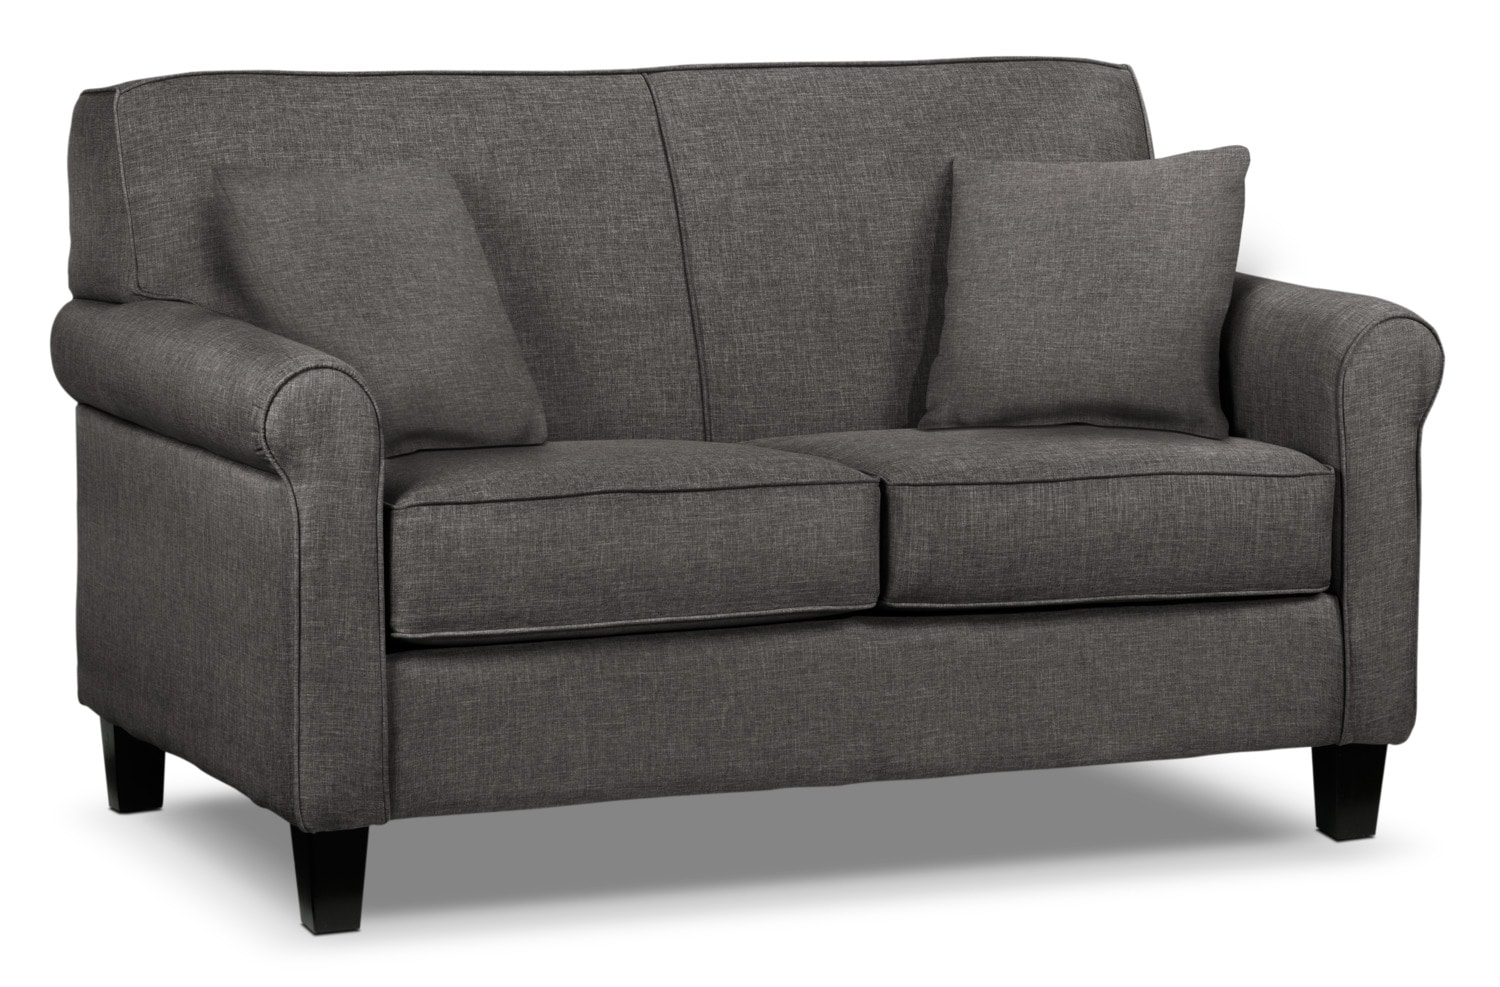 Living Room Furniture - Ariel Loveseat - Marmor